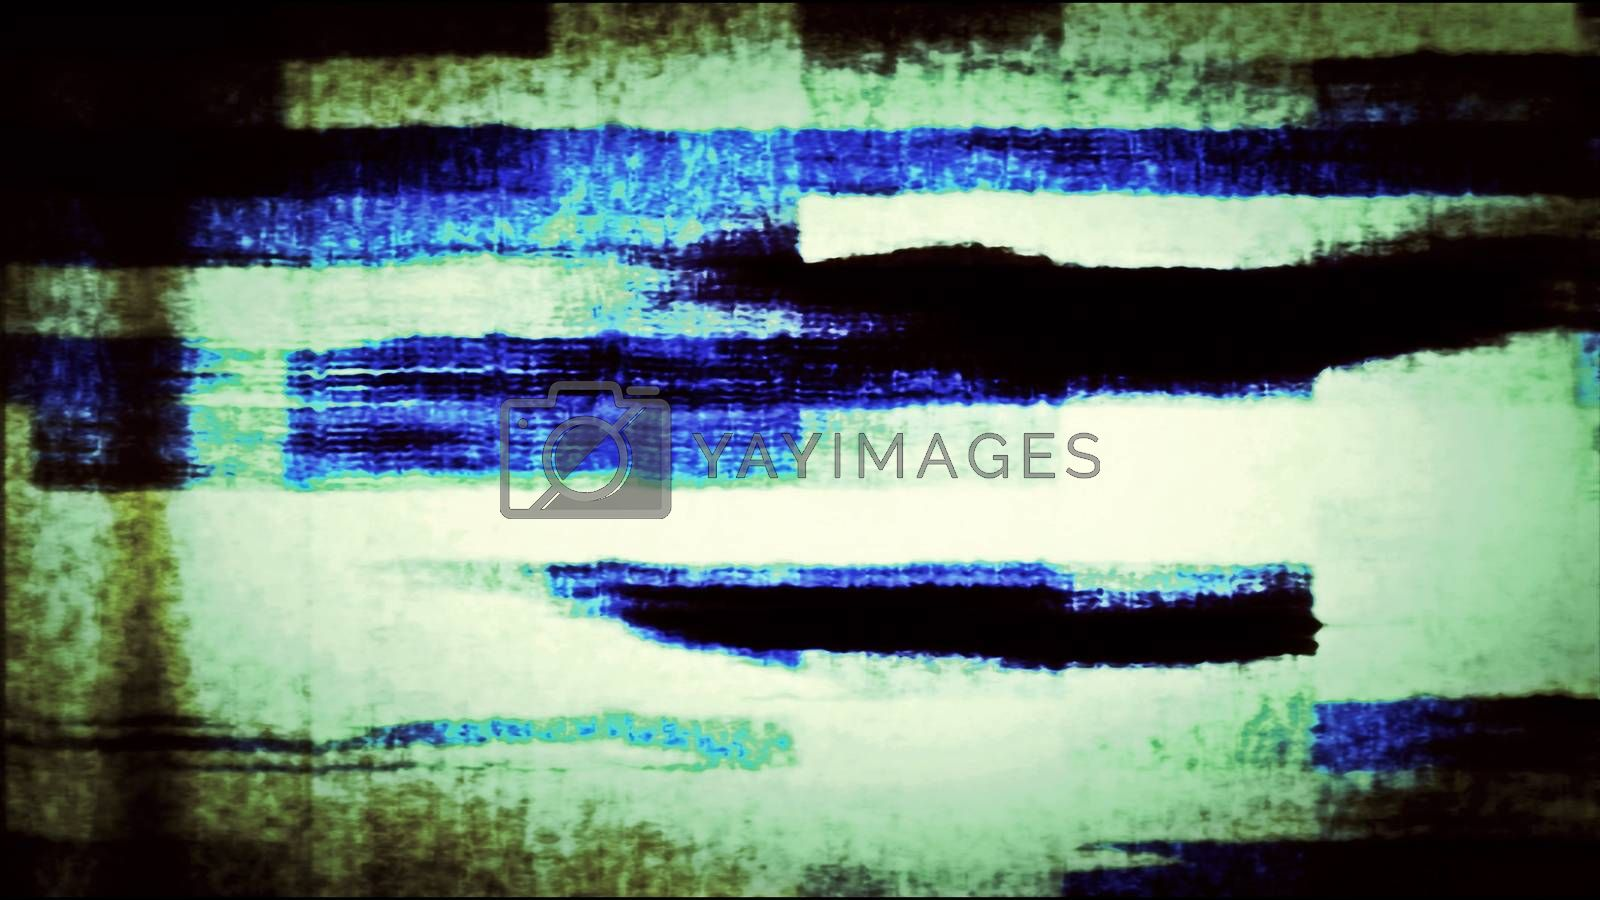 Future Tech 0275 - Futuristic technology abstract screen with digital noise.